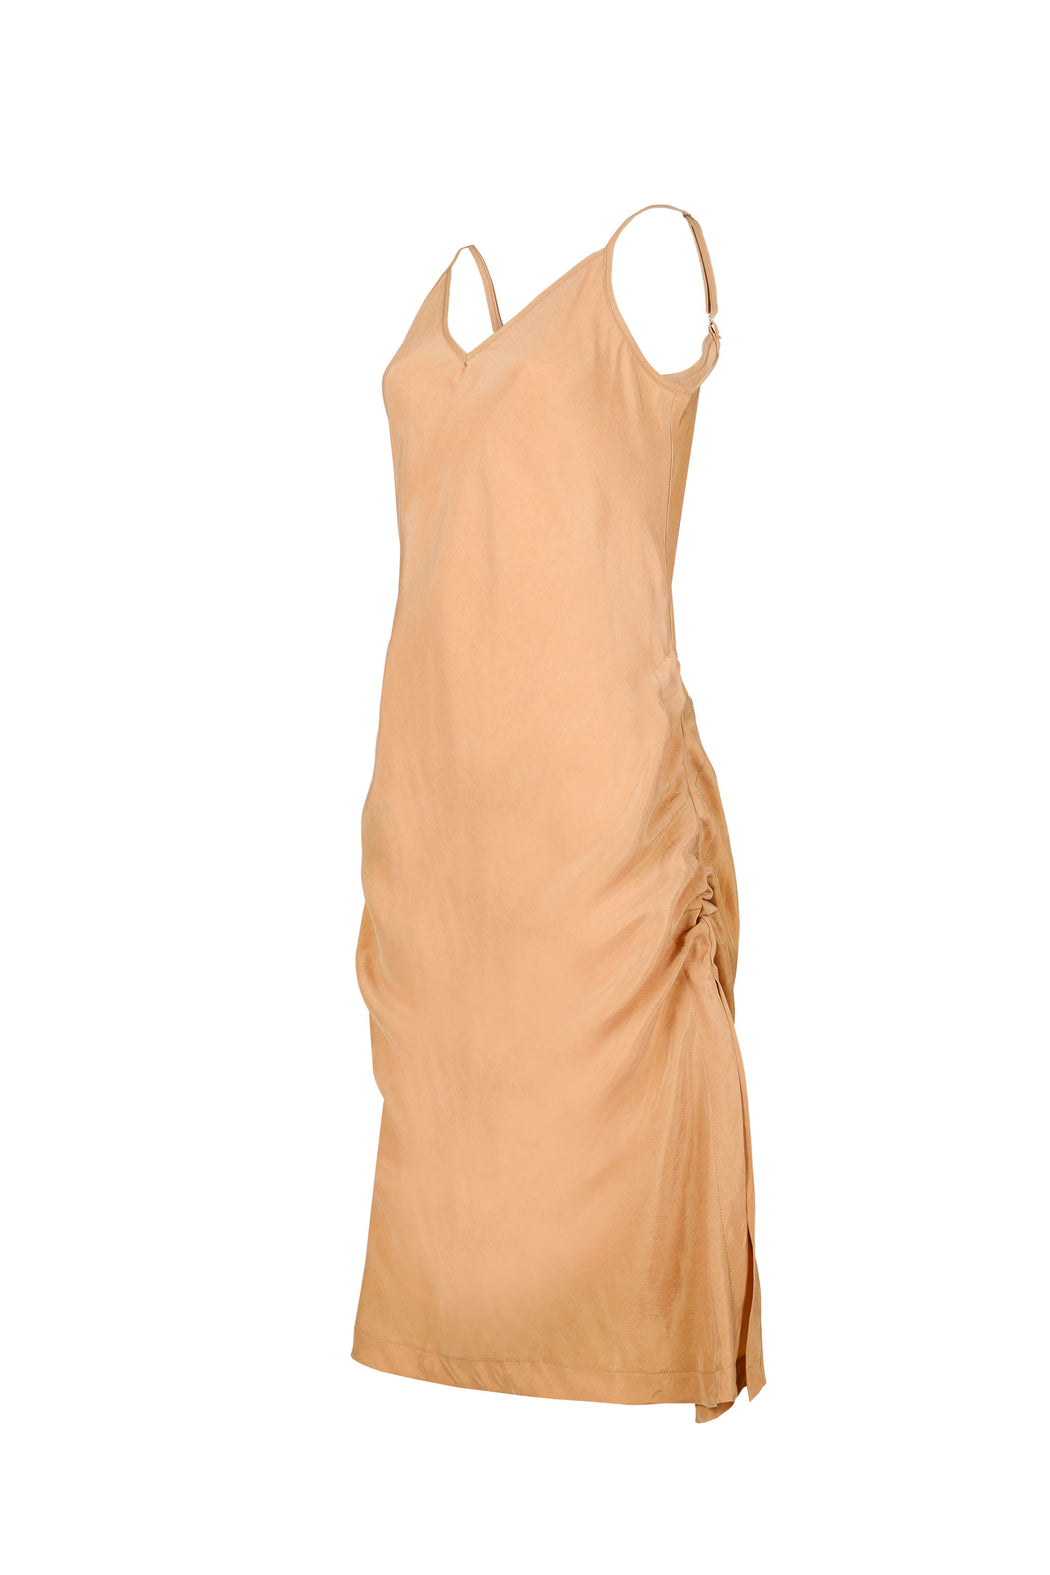 Women Cupro Sleeveless Dress, Adjusted side view, Gold